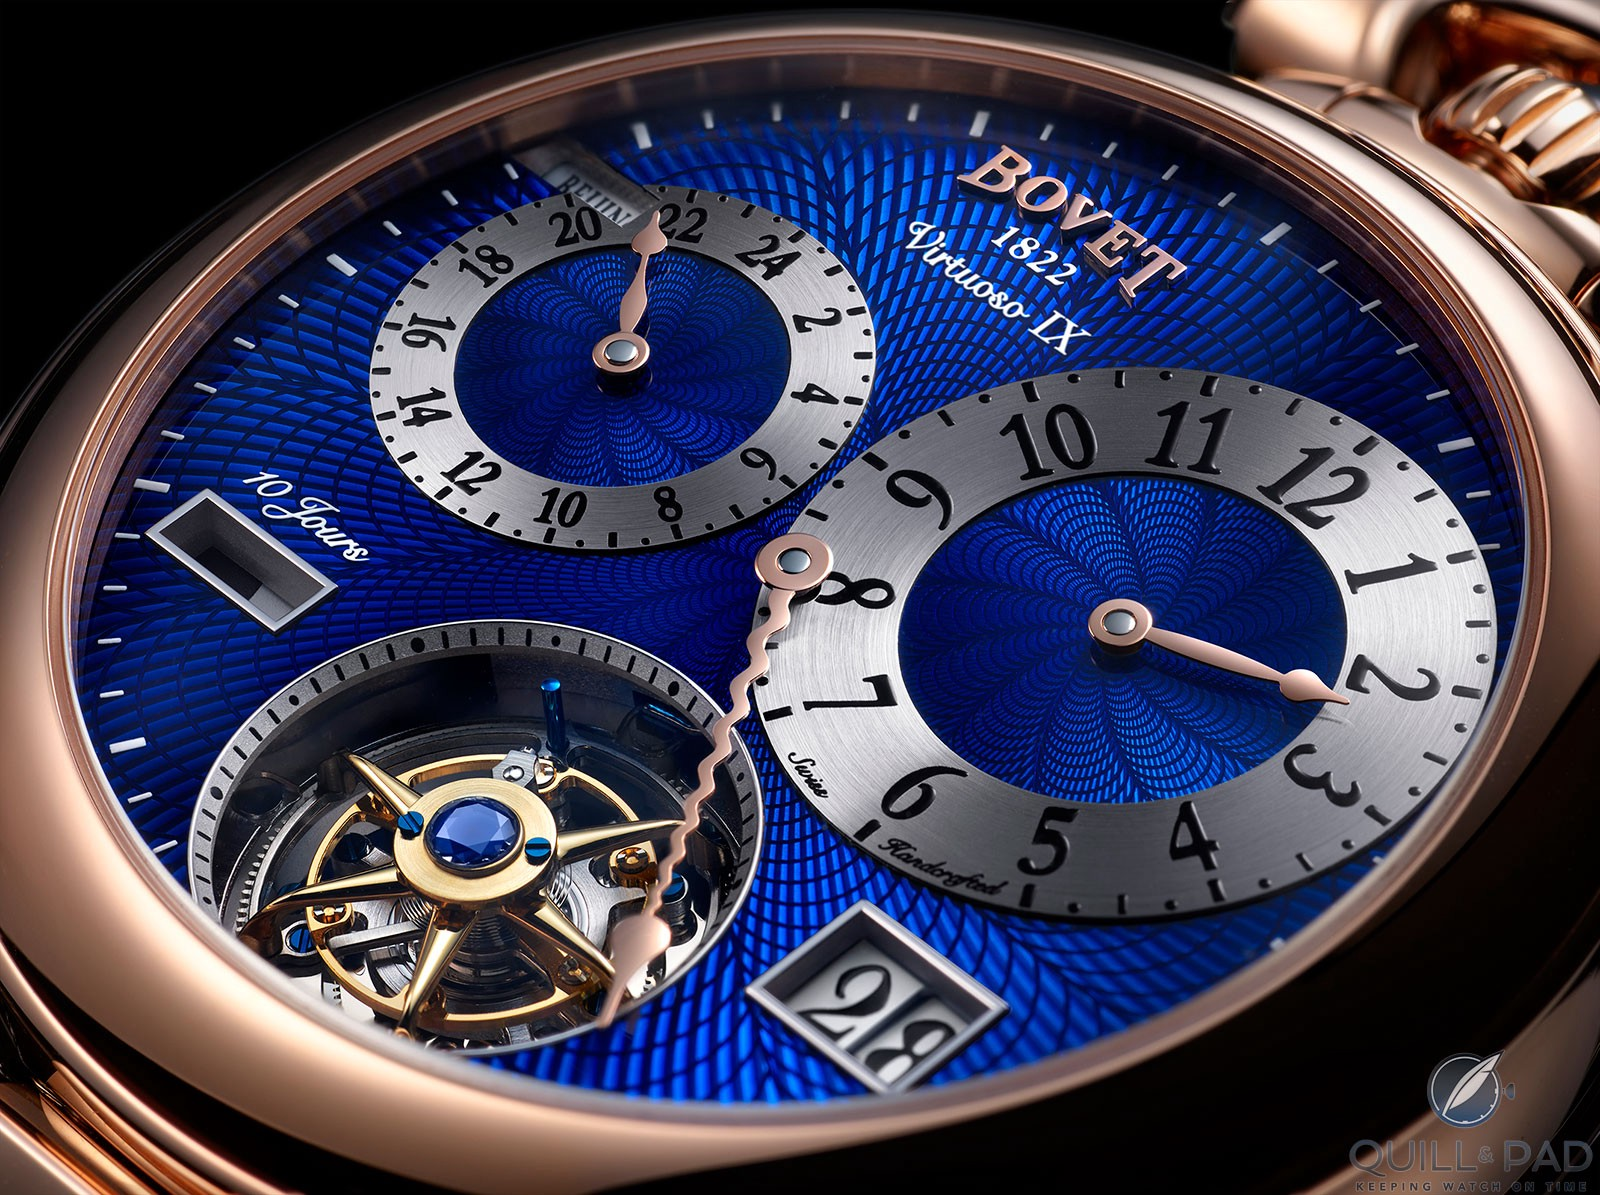 Close look at the blue enamel over guilloche dial of the Bovet Virtuoso IX